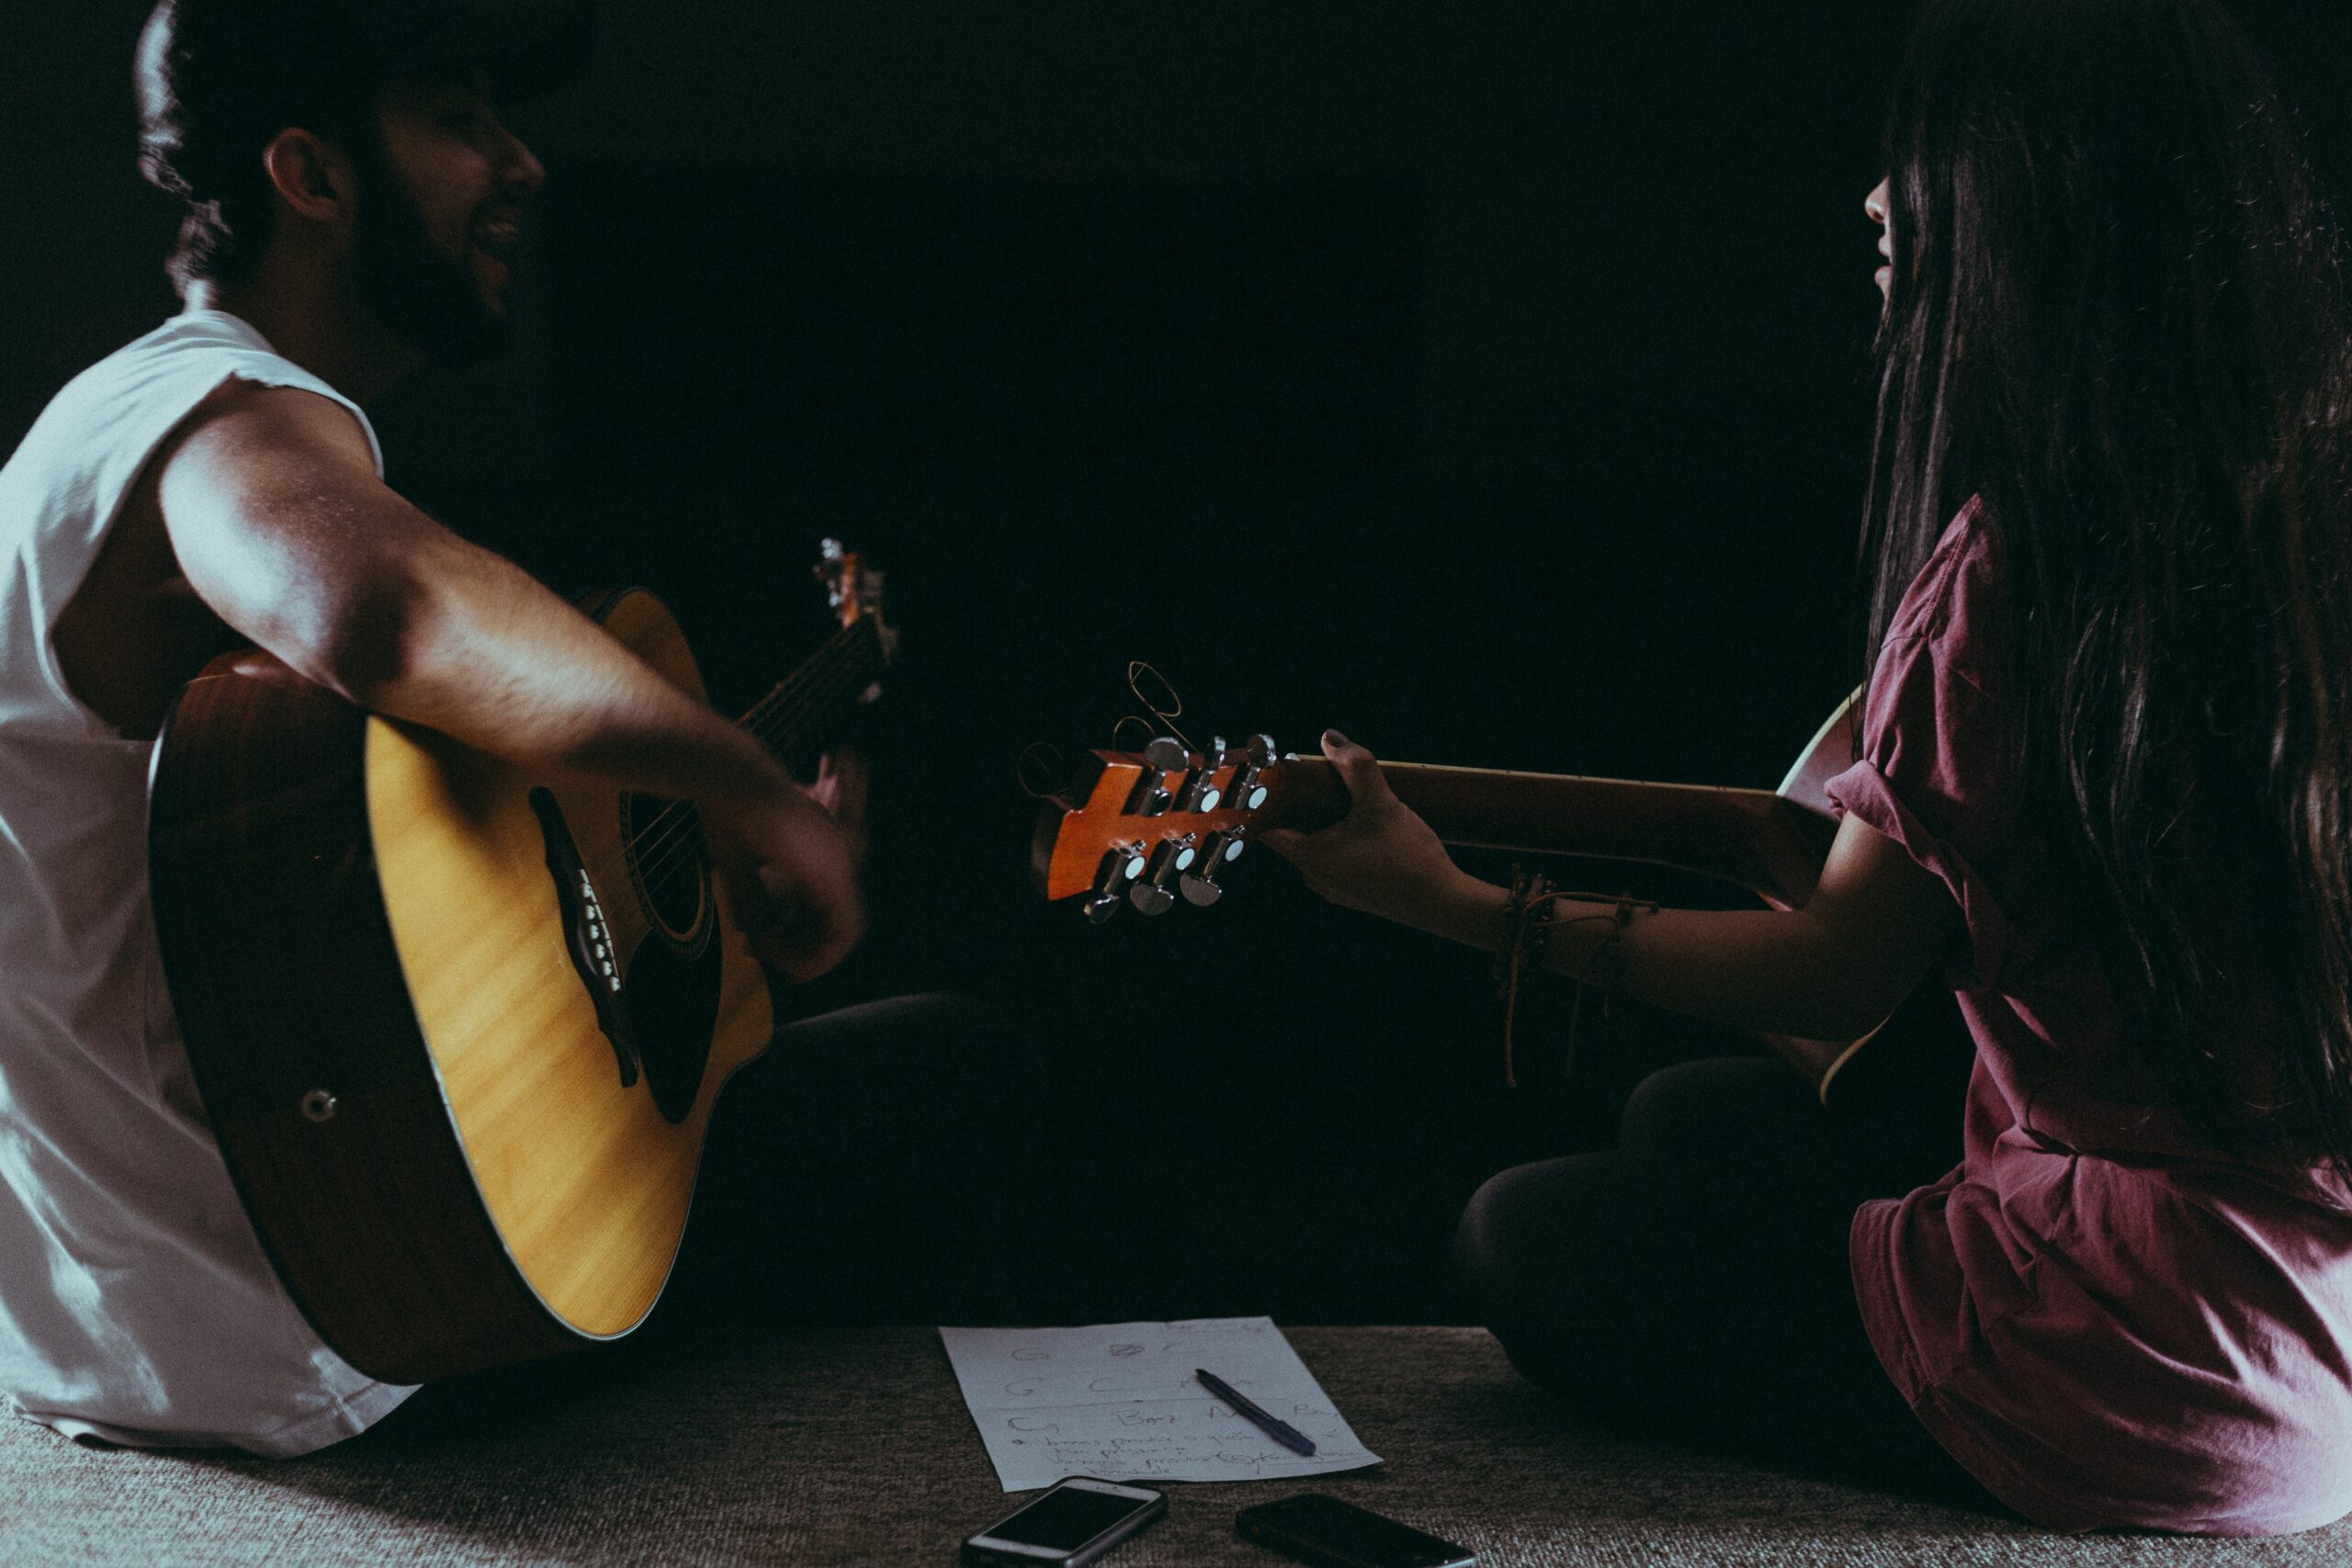 Man and Woman Playing Guitar | Top 9 Milestones To Shoot For When Learning To Play Guitar